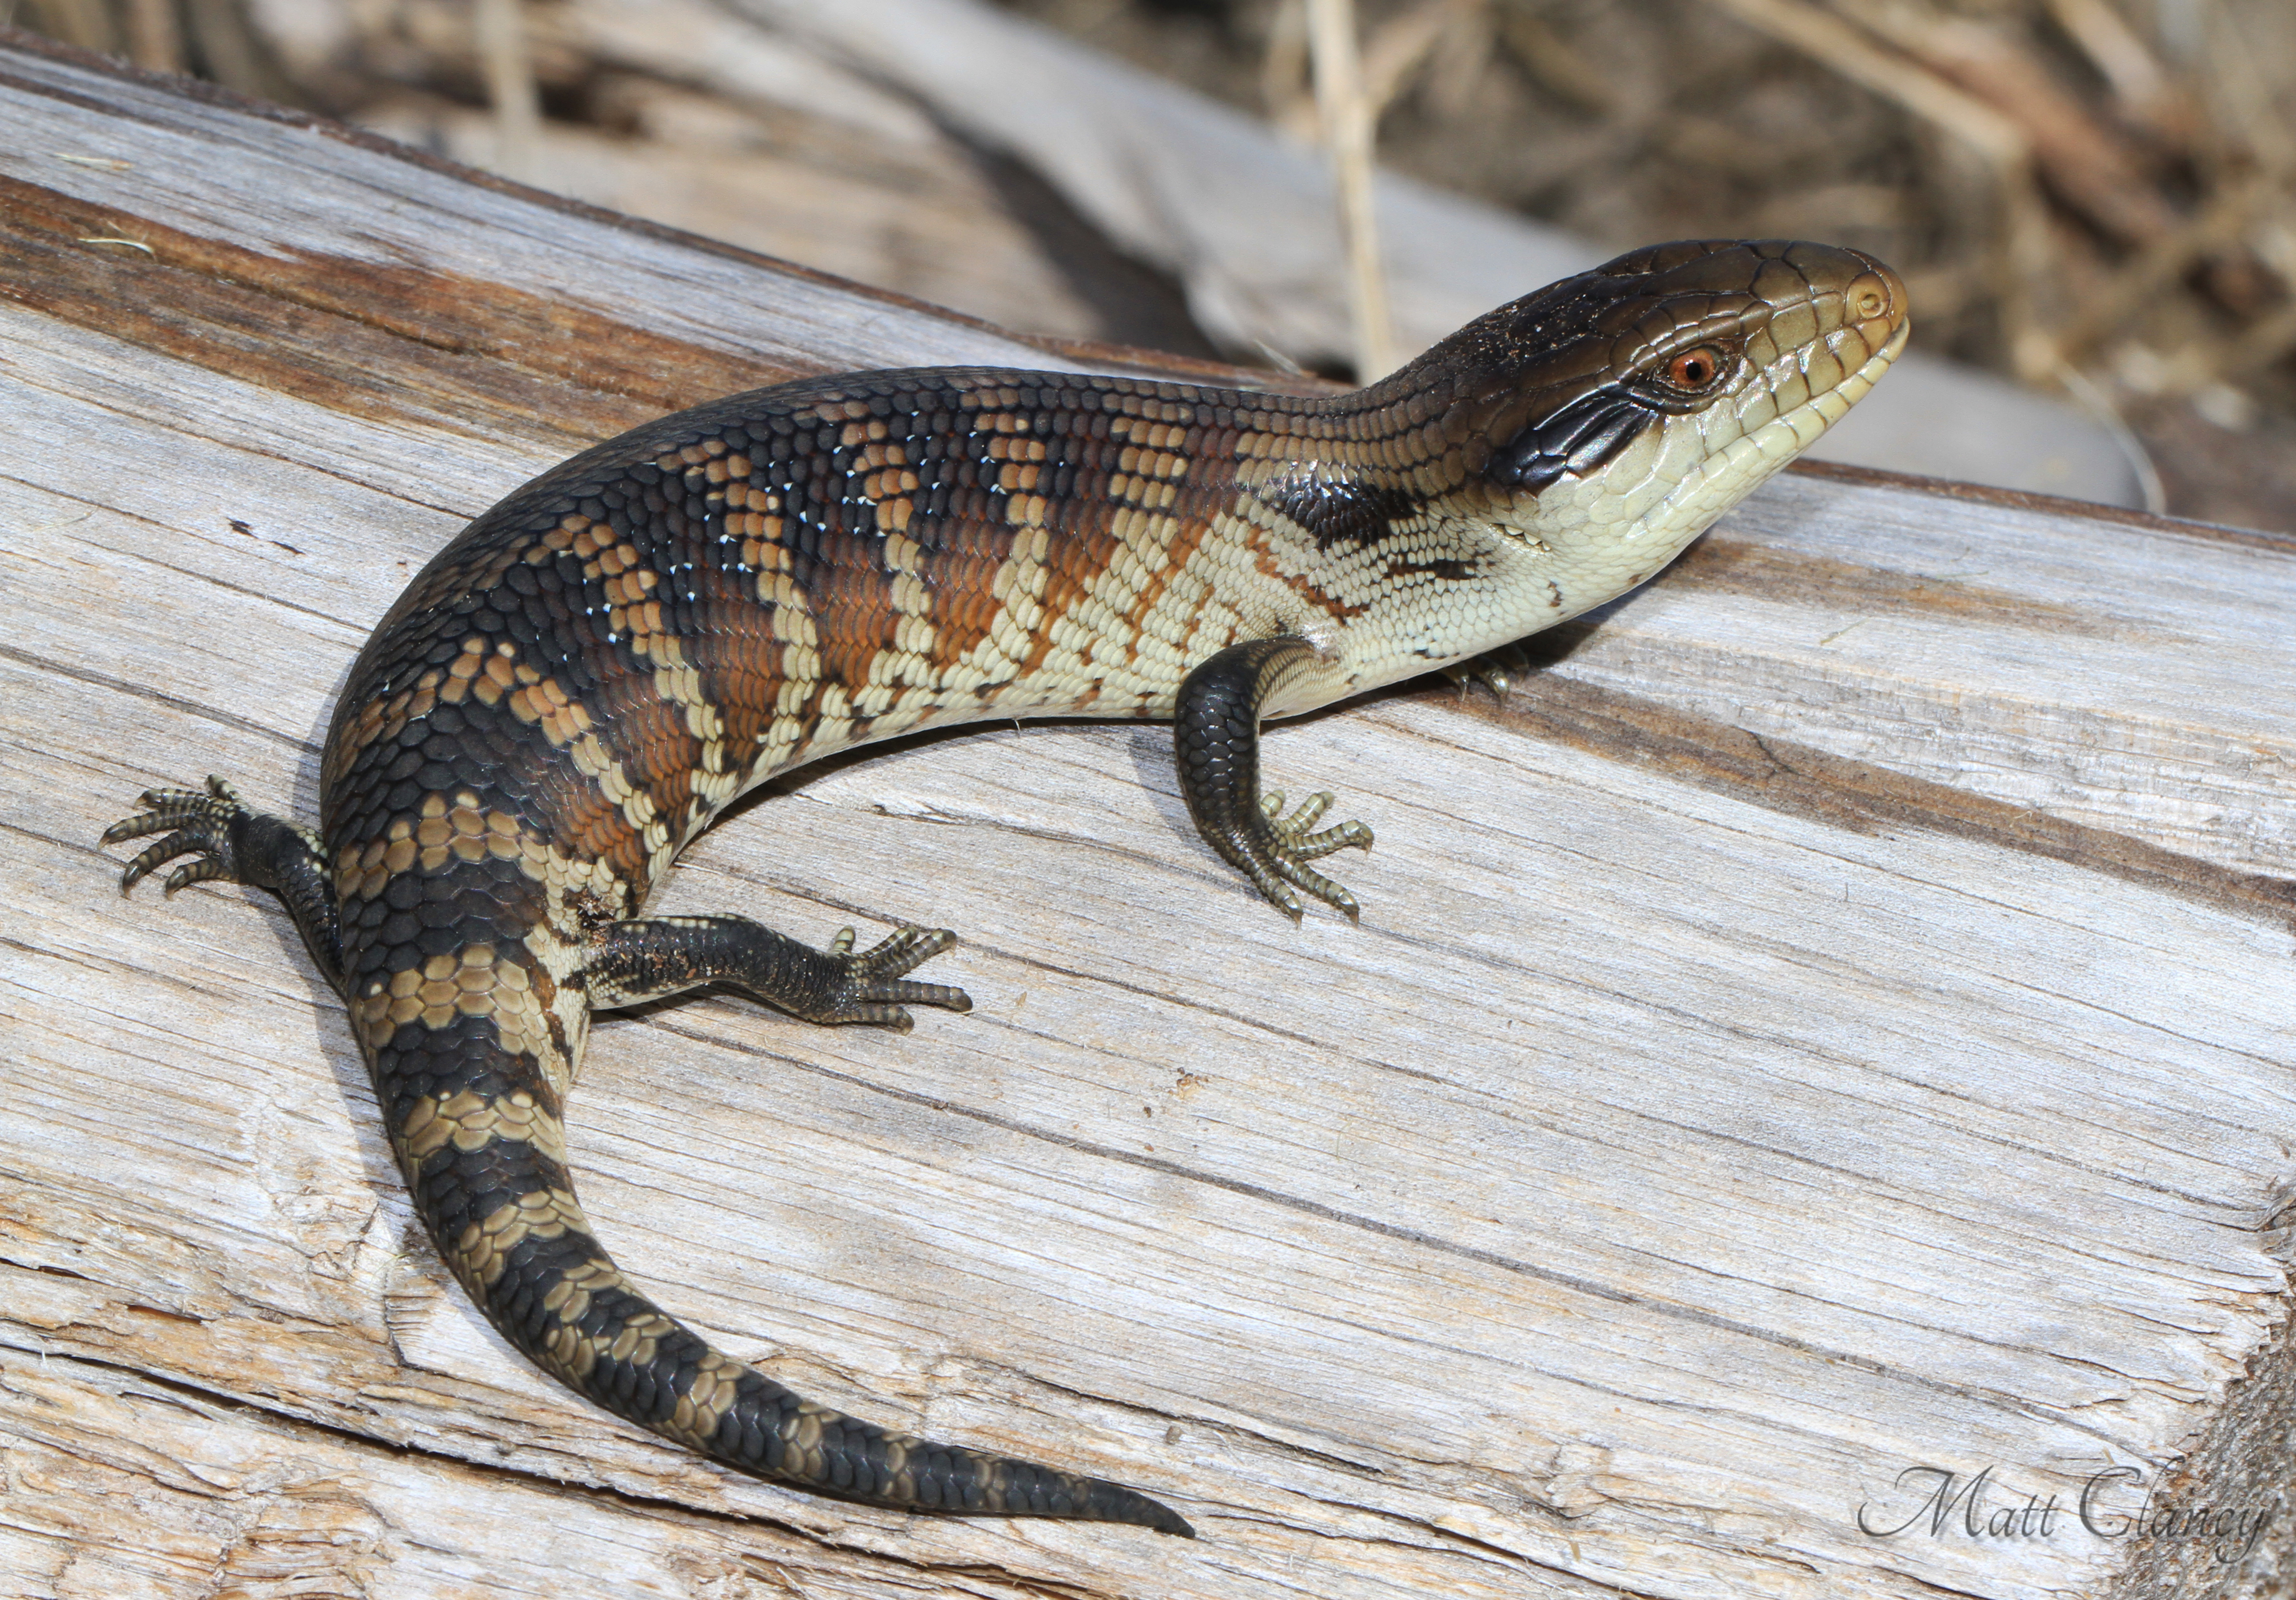 how to look after a pet blue tongue lizard